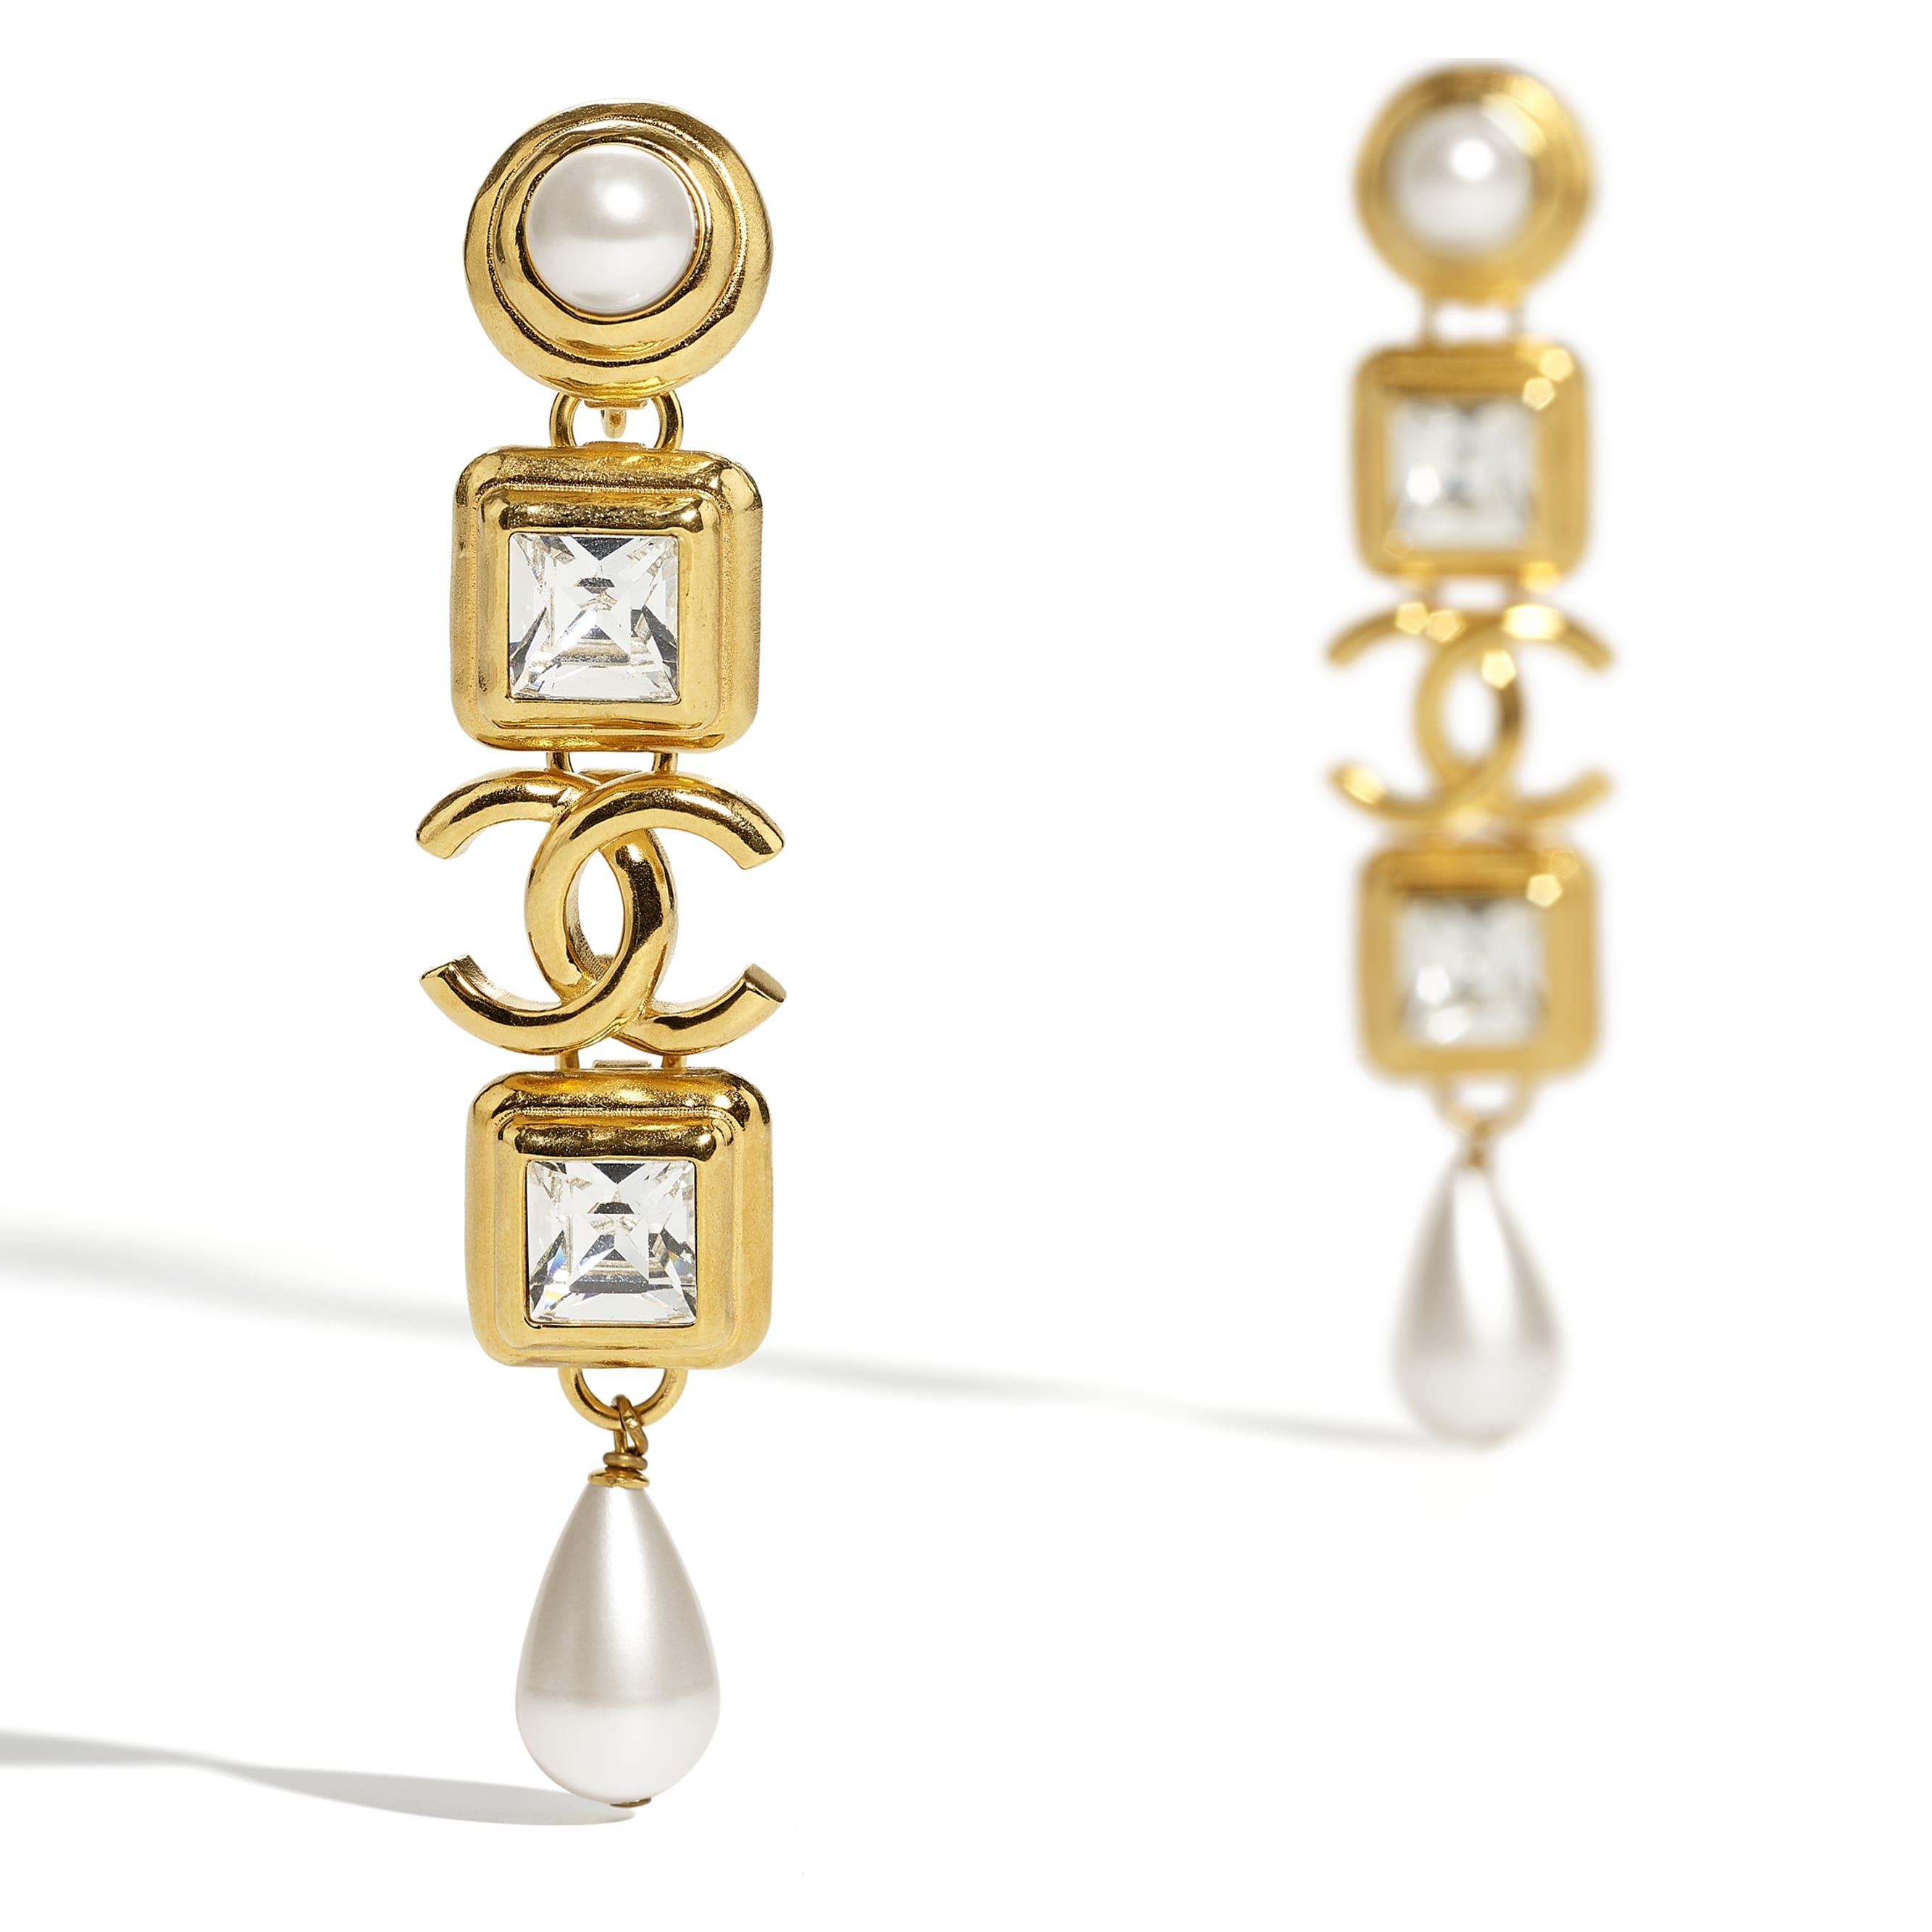 Clip-On Earrings - Gold, Pearly White & Crystal - Metal, Glass Pearls, Imitation Pearls & Diamanté - CHANEL - Alternative view - see standard sized version